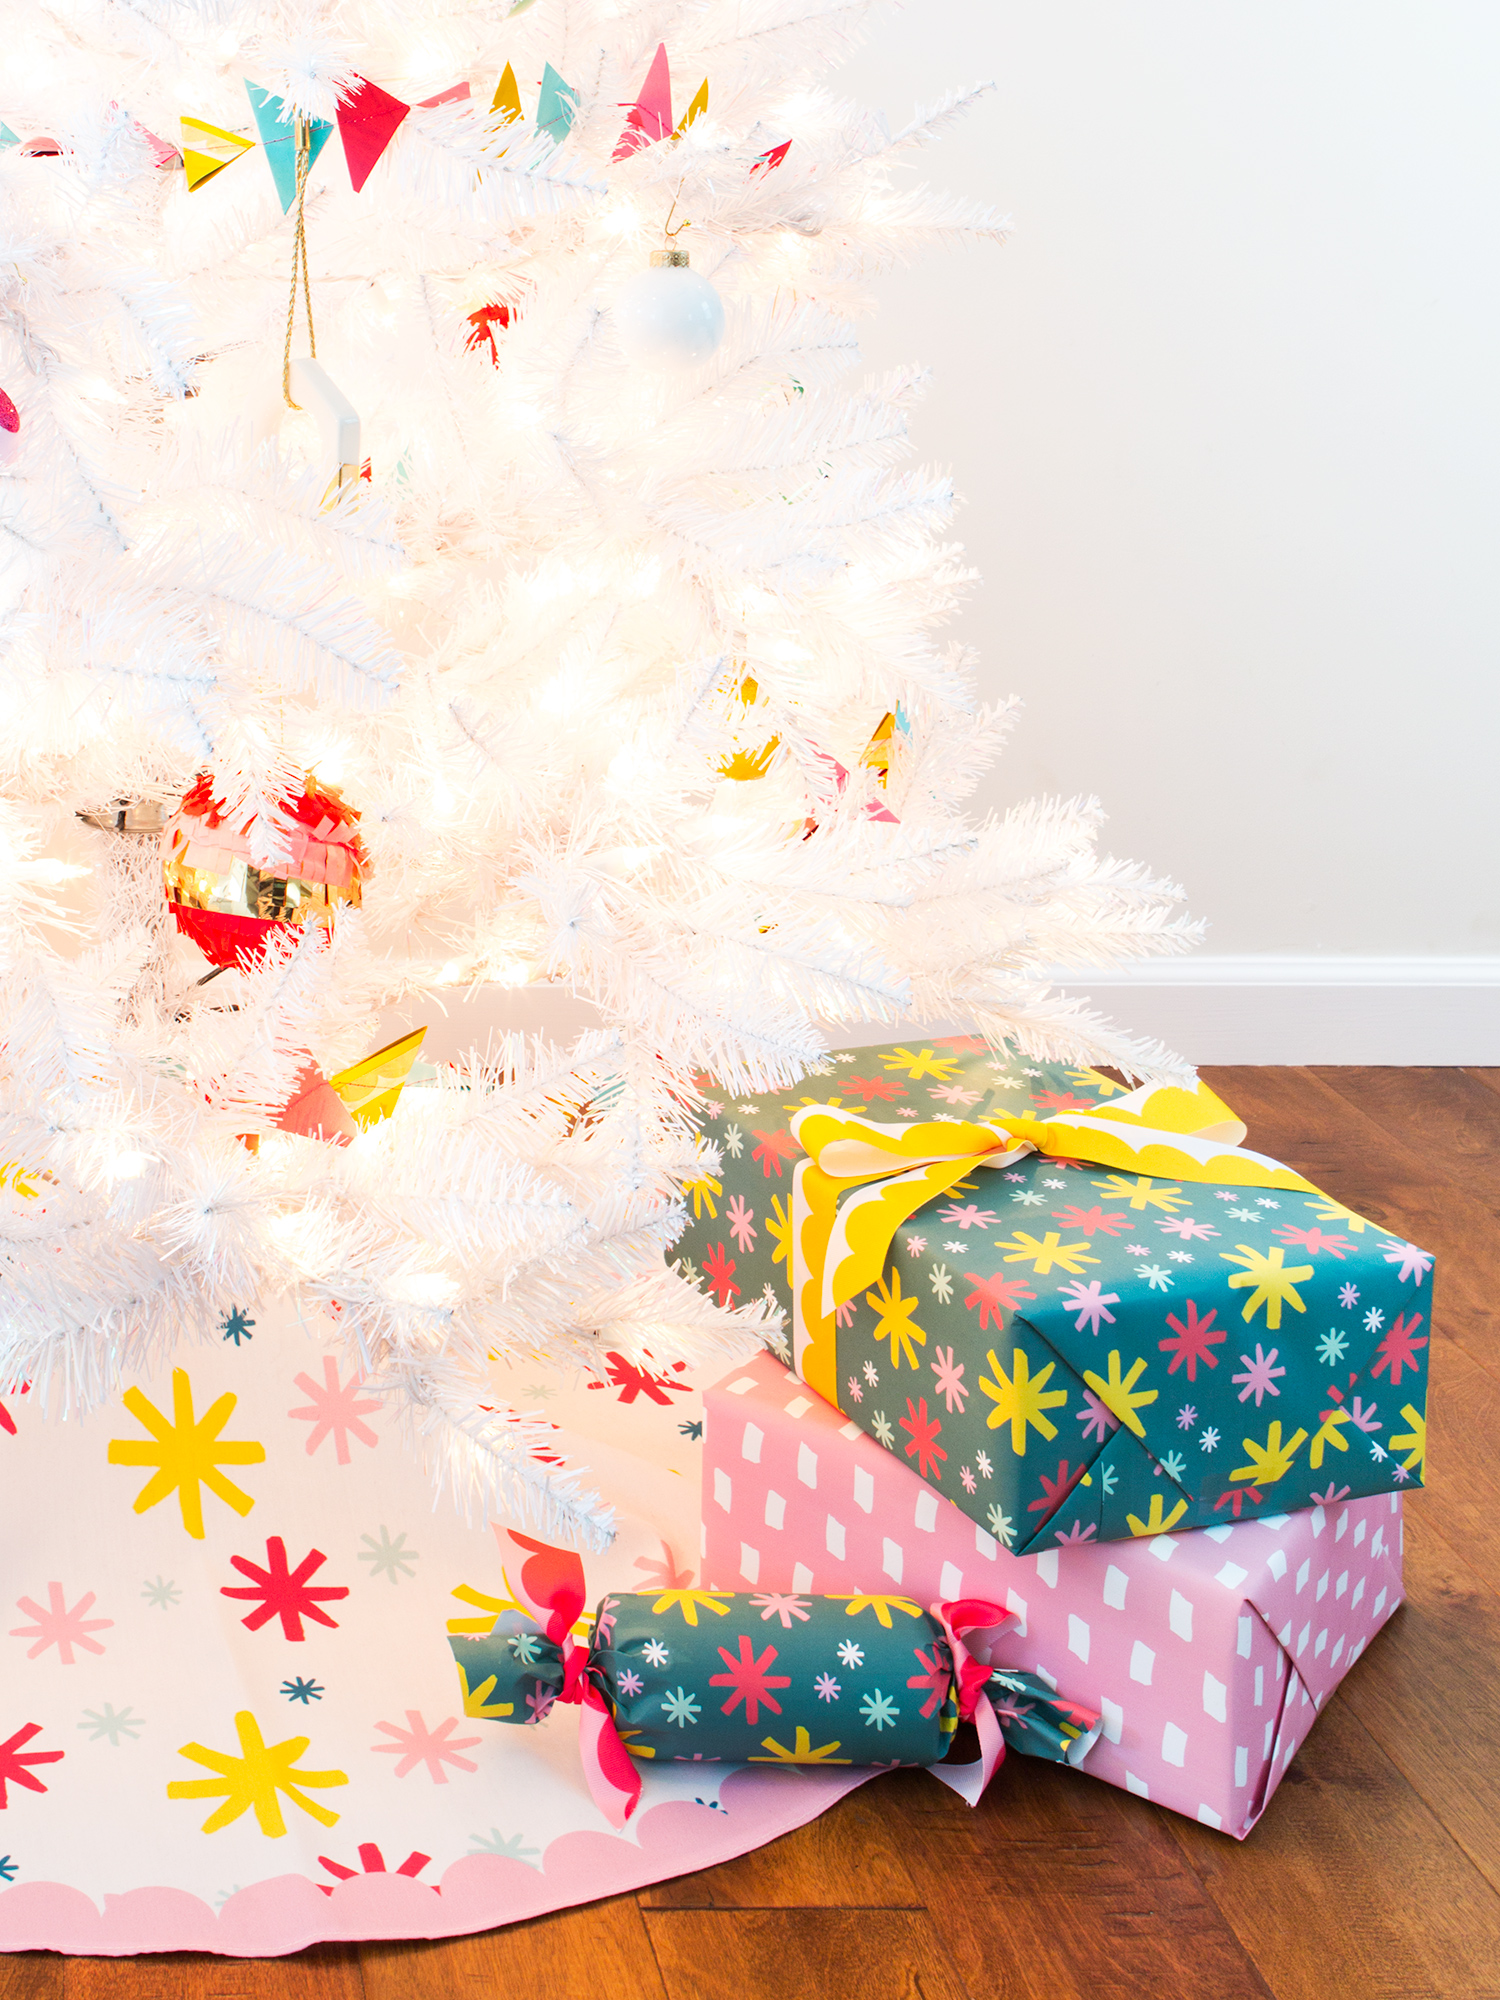 This colorful tree skirt is the perfect compliment to a white Christmas tree!